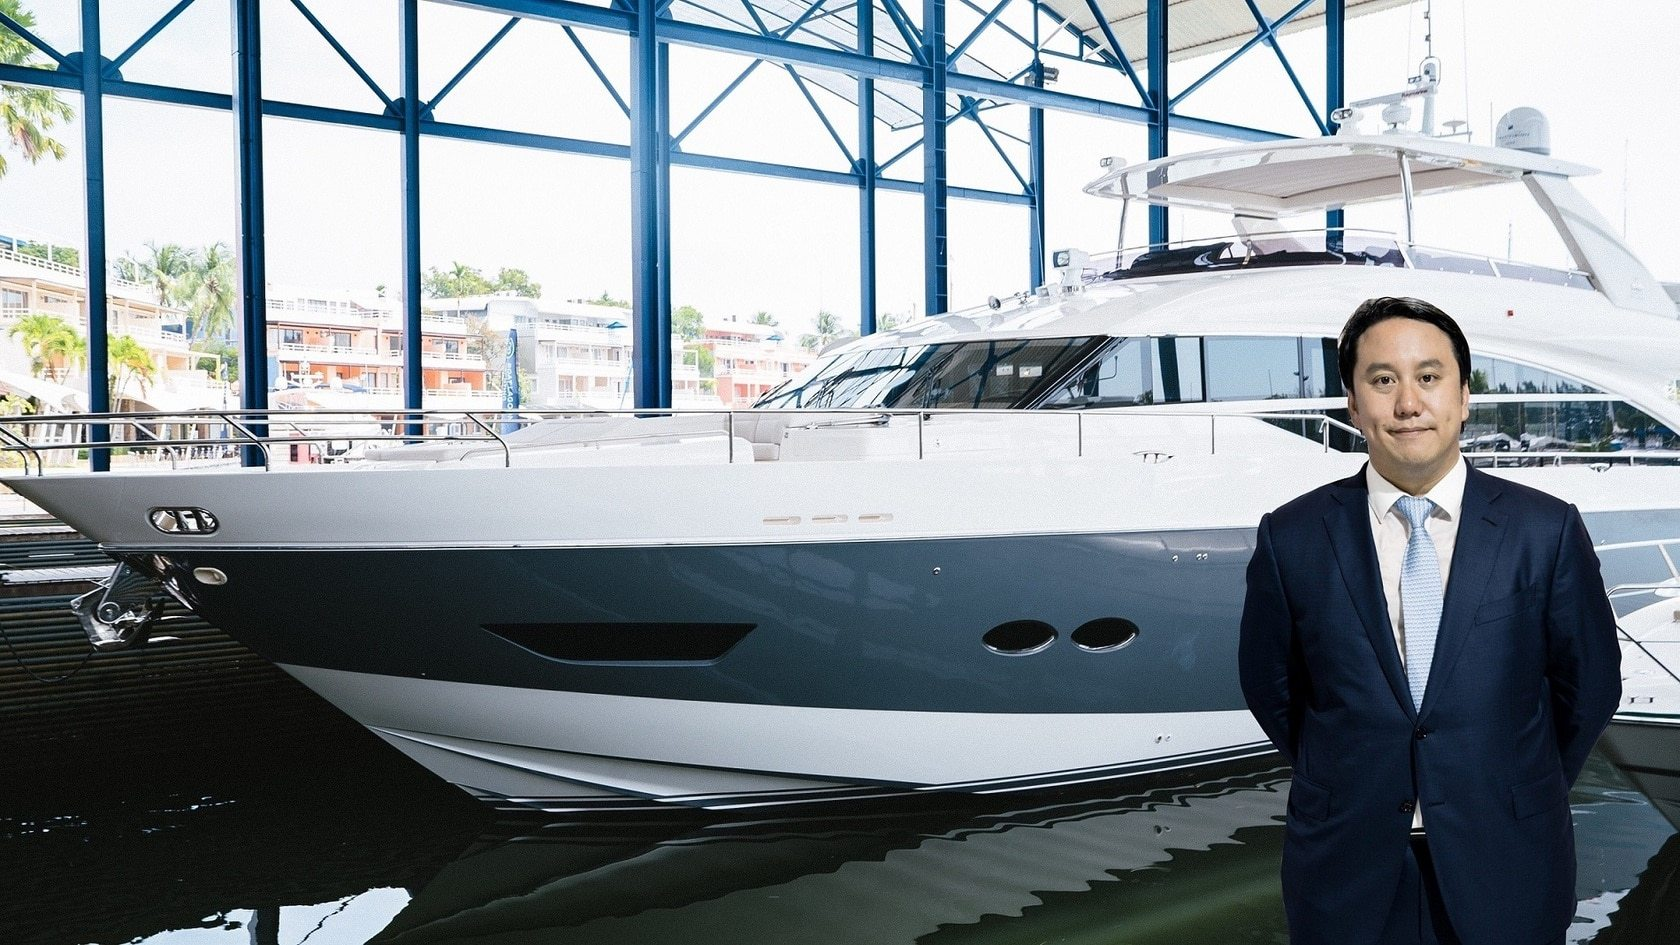 Boat Lagoon Yachting announces mega shipment of private yachts | The Thaiger